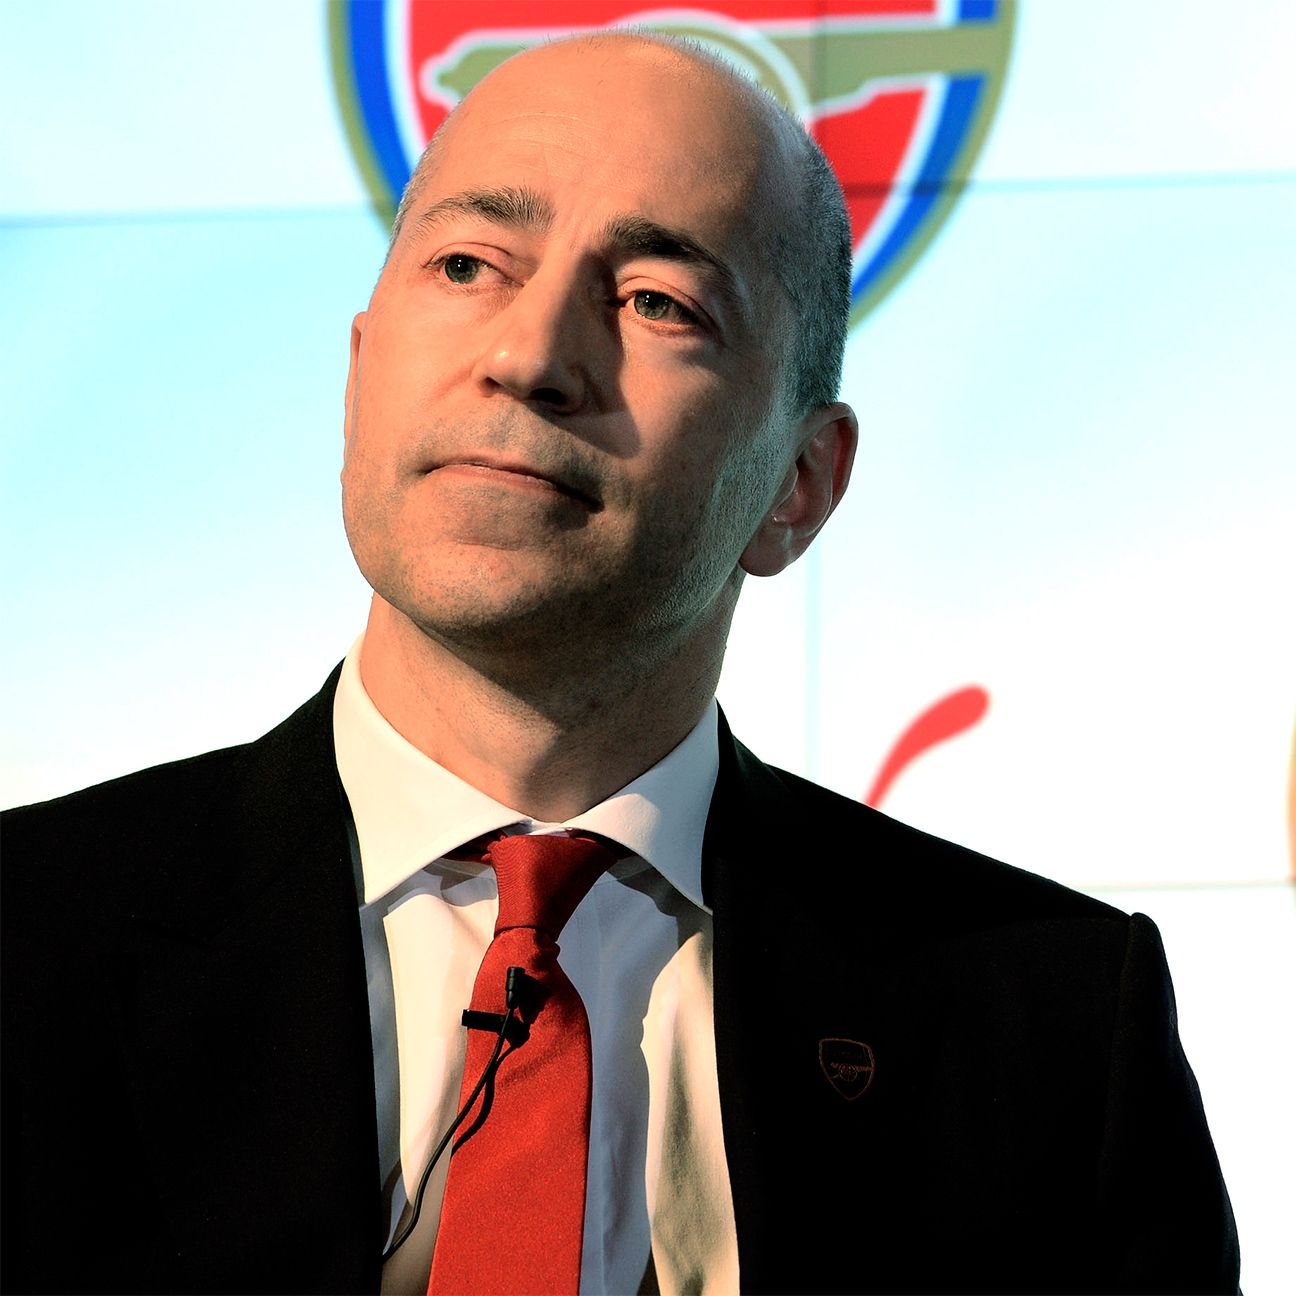 Ivan Gazidis is to stand down as Arsenal CEO and move to AC Milan.